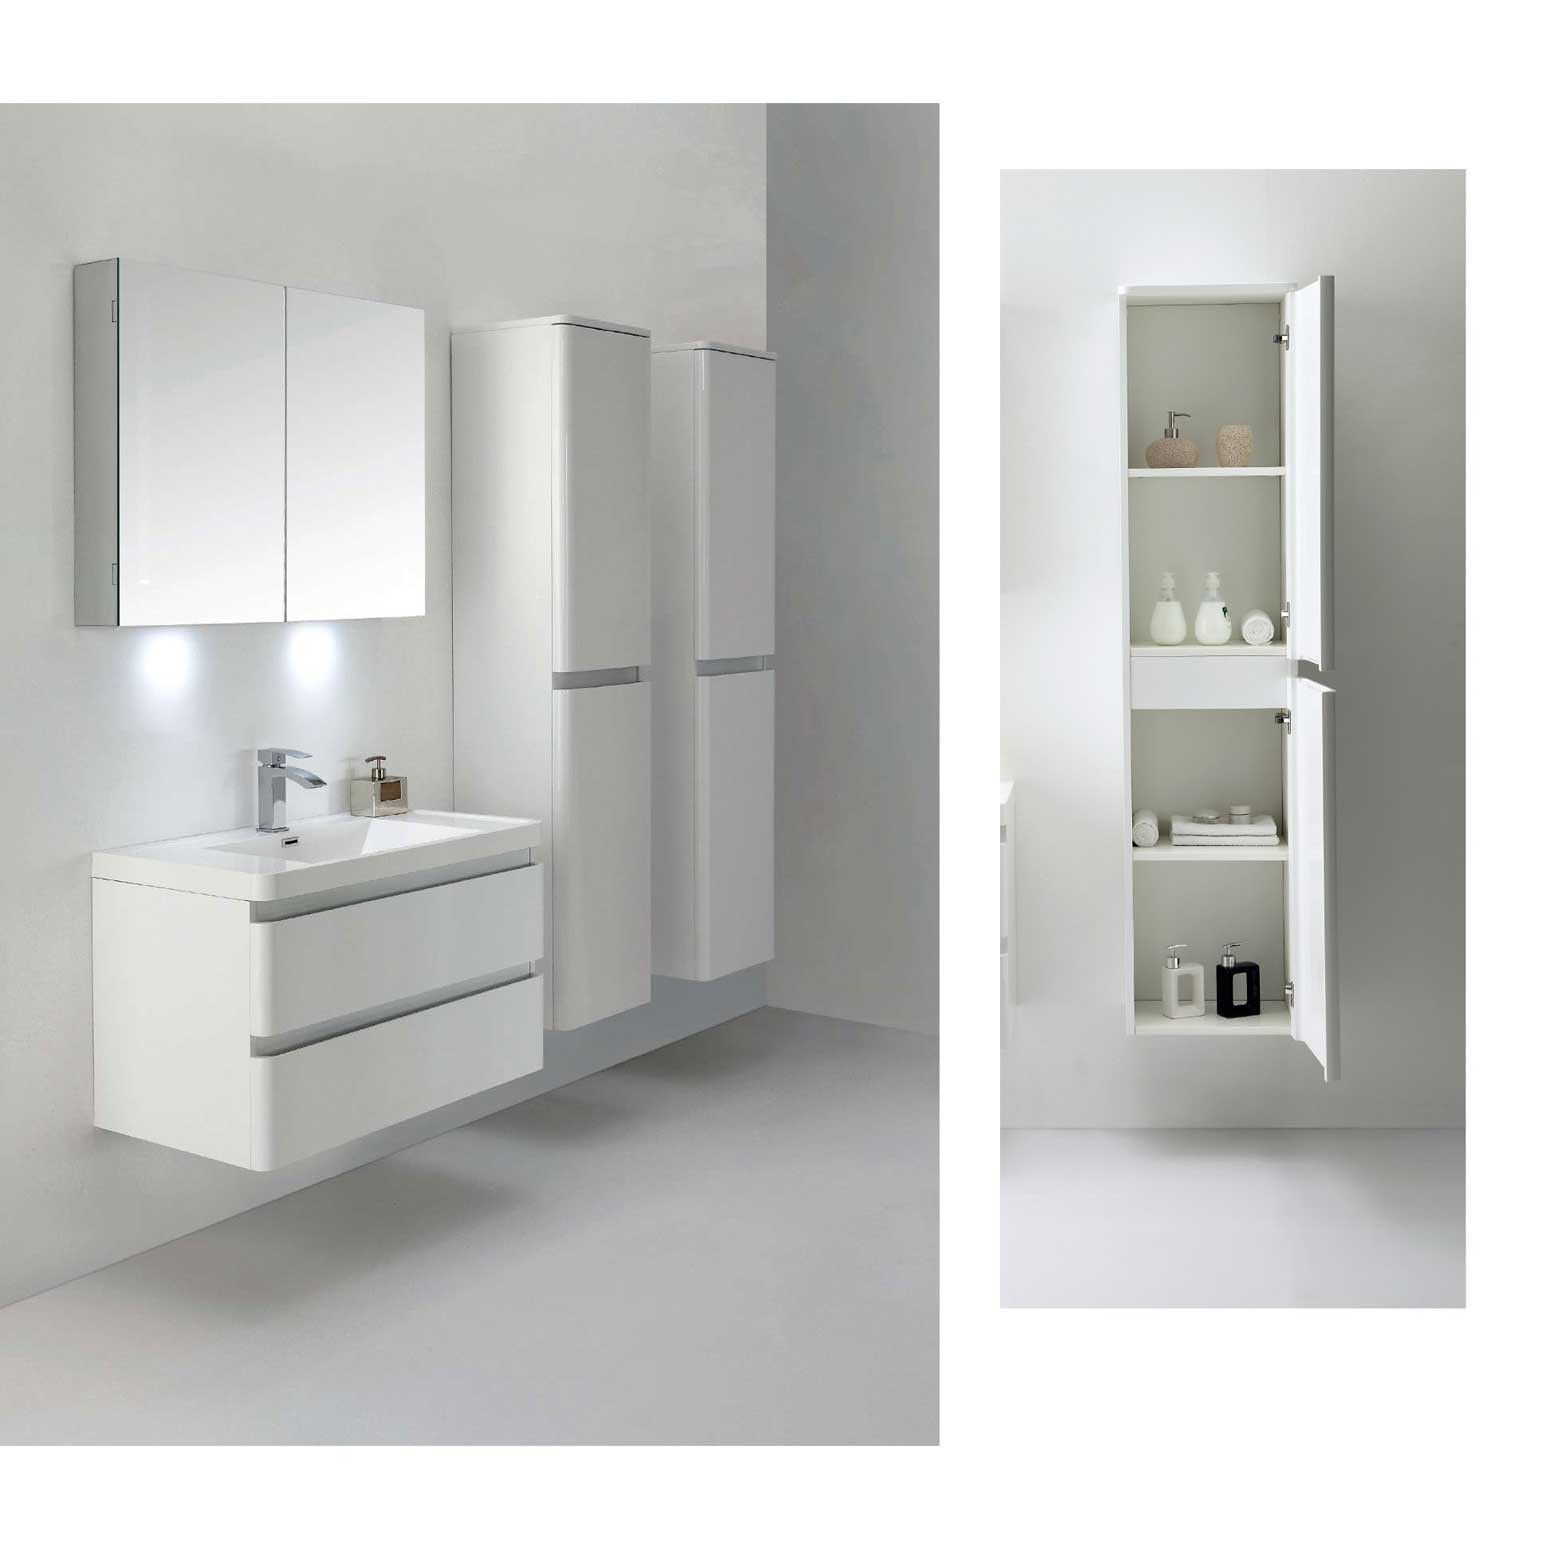 77+ Wall Mounted Bathroom Cabinet - Kitchen Cabinets Storage Ideas ...